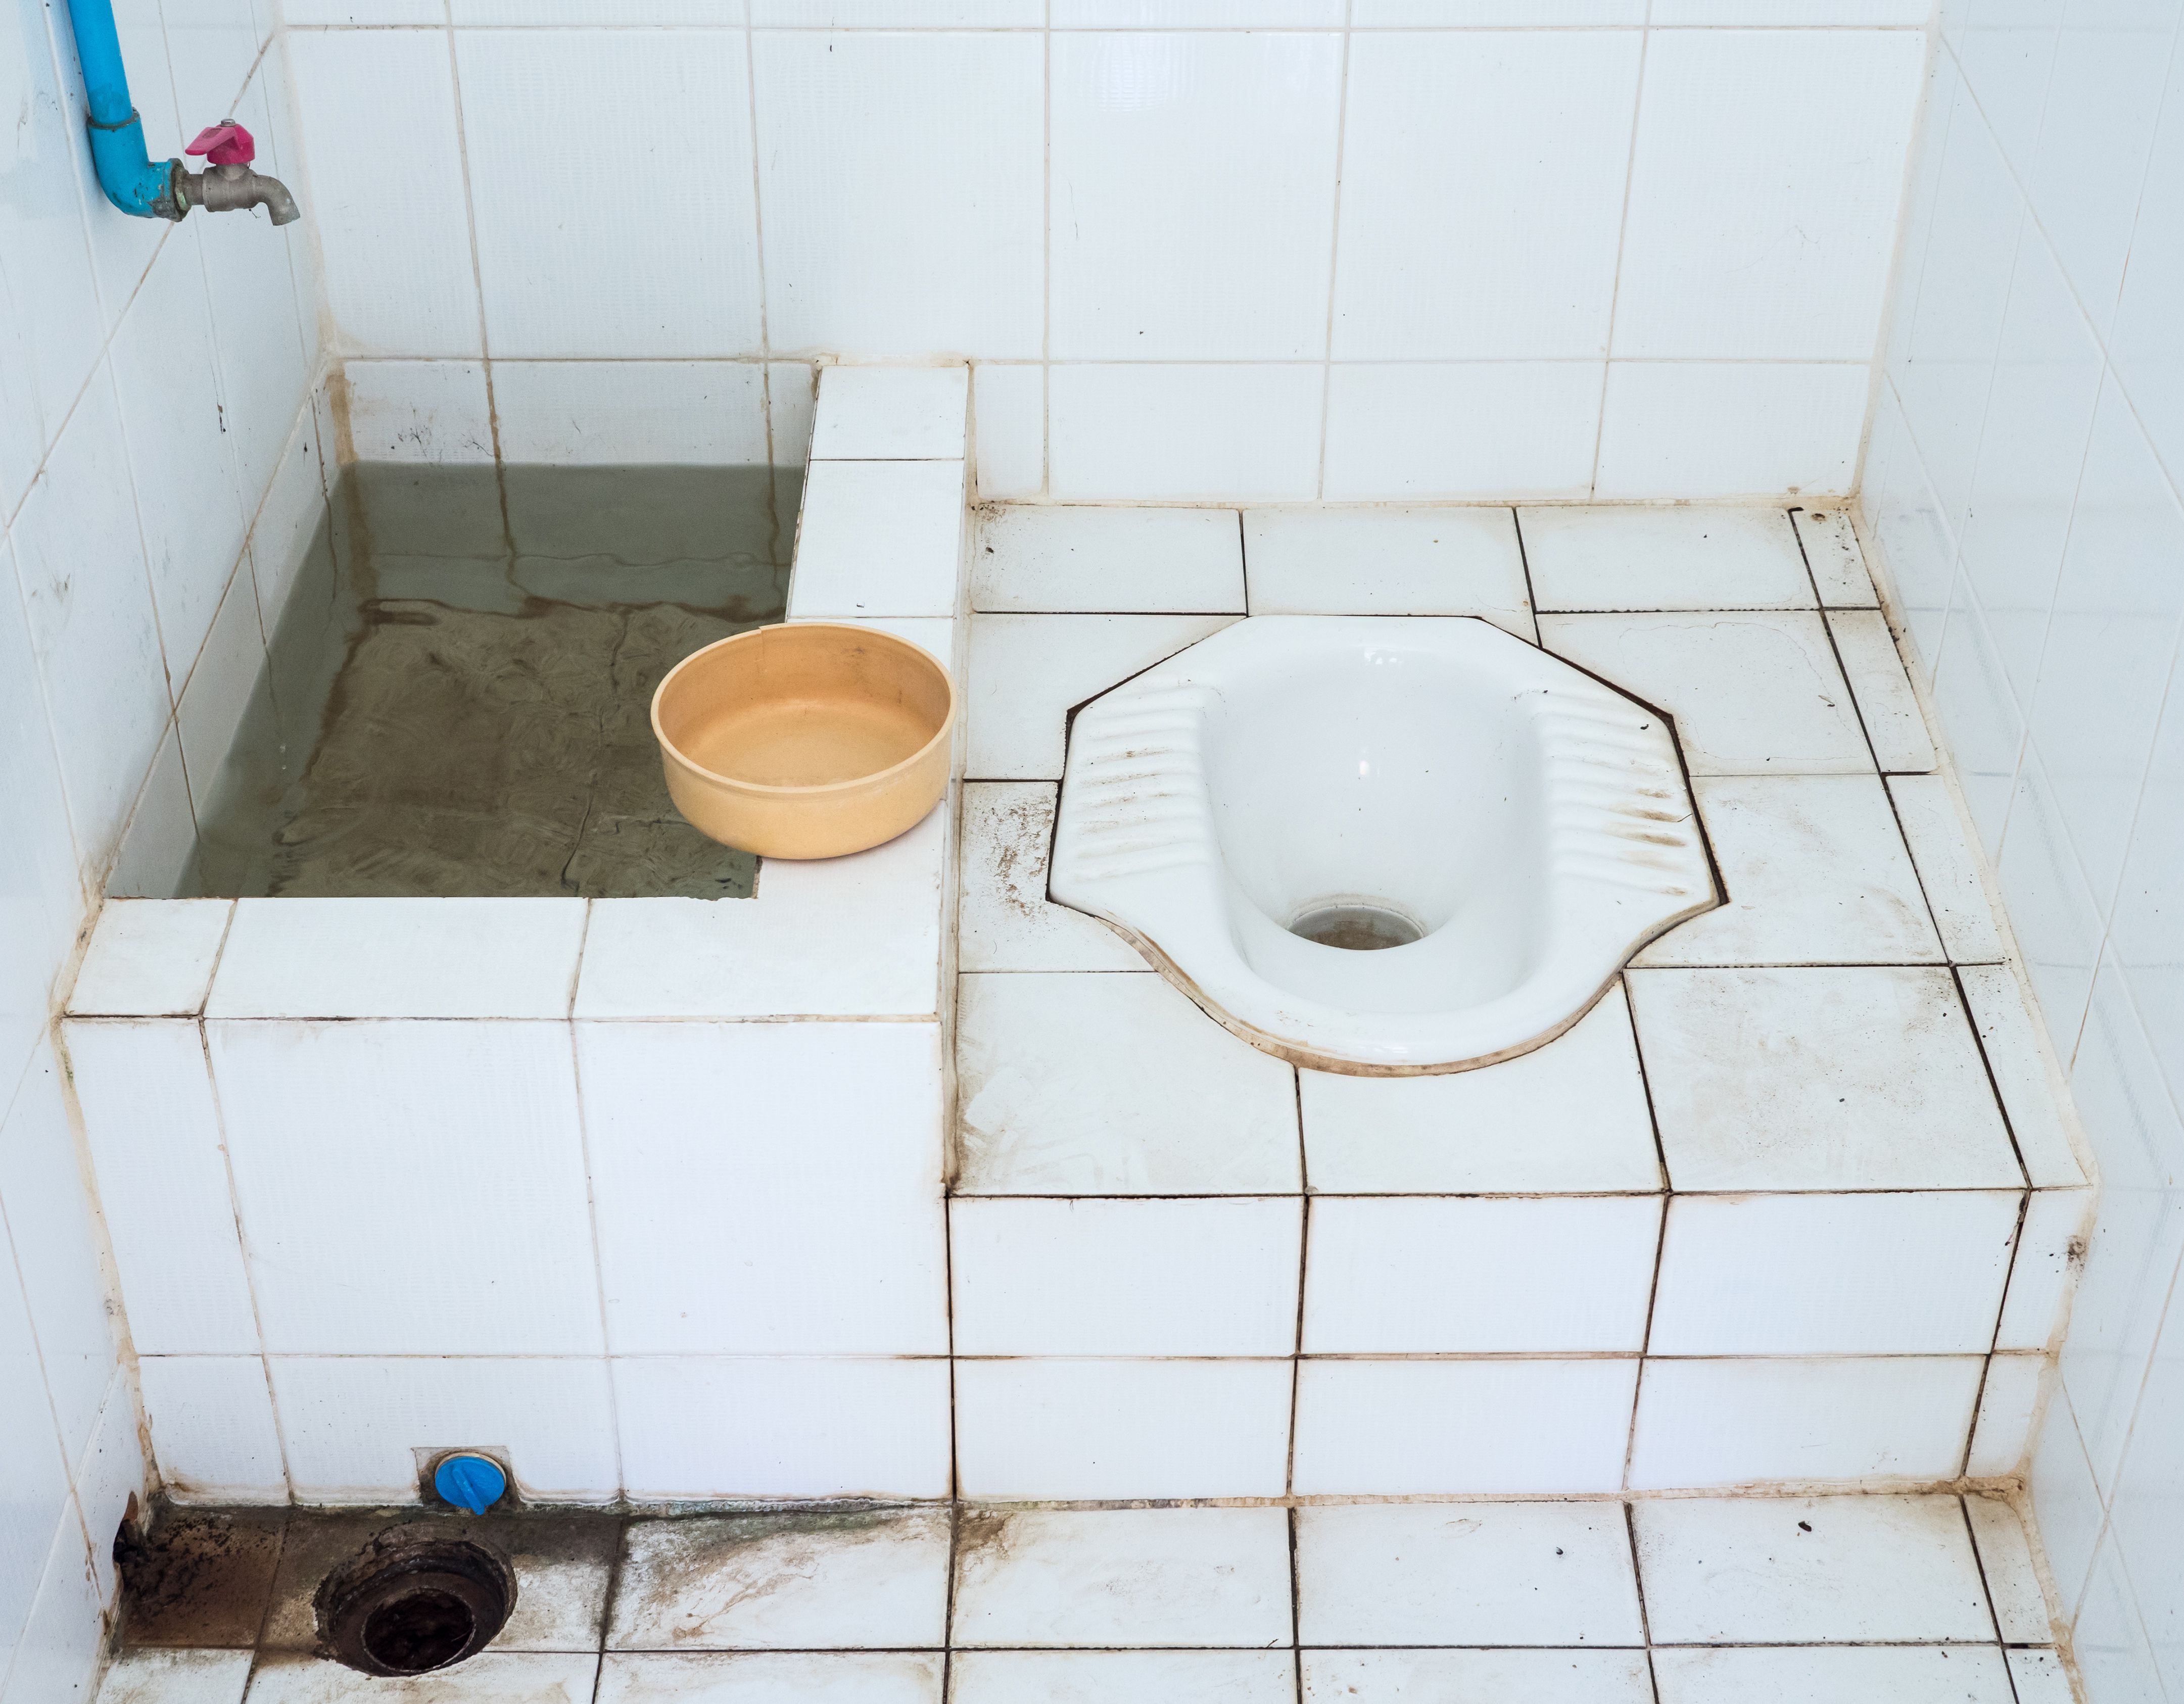 Squat Toilets in Asia: Tips and What to Expect